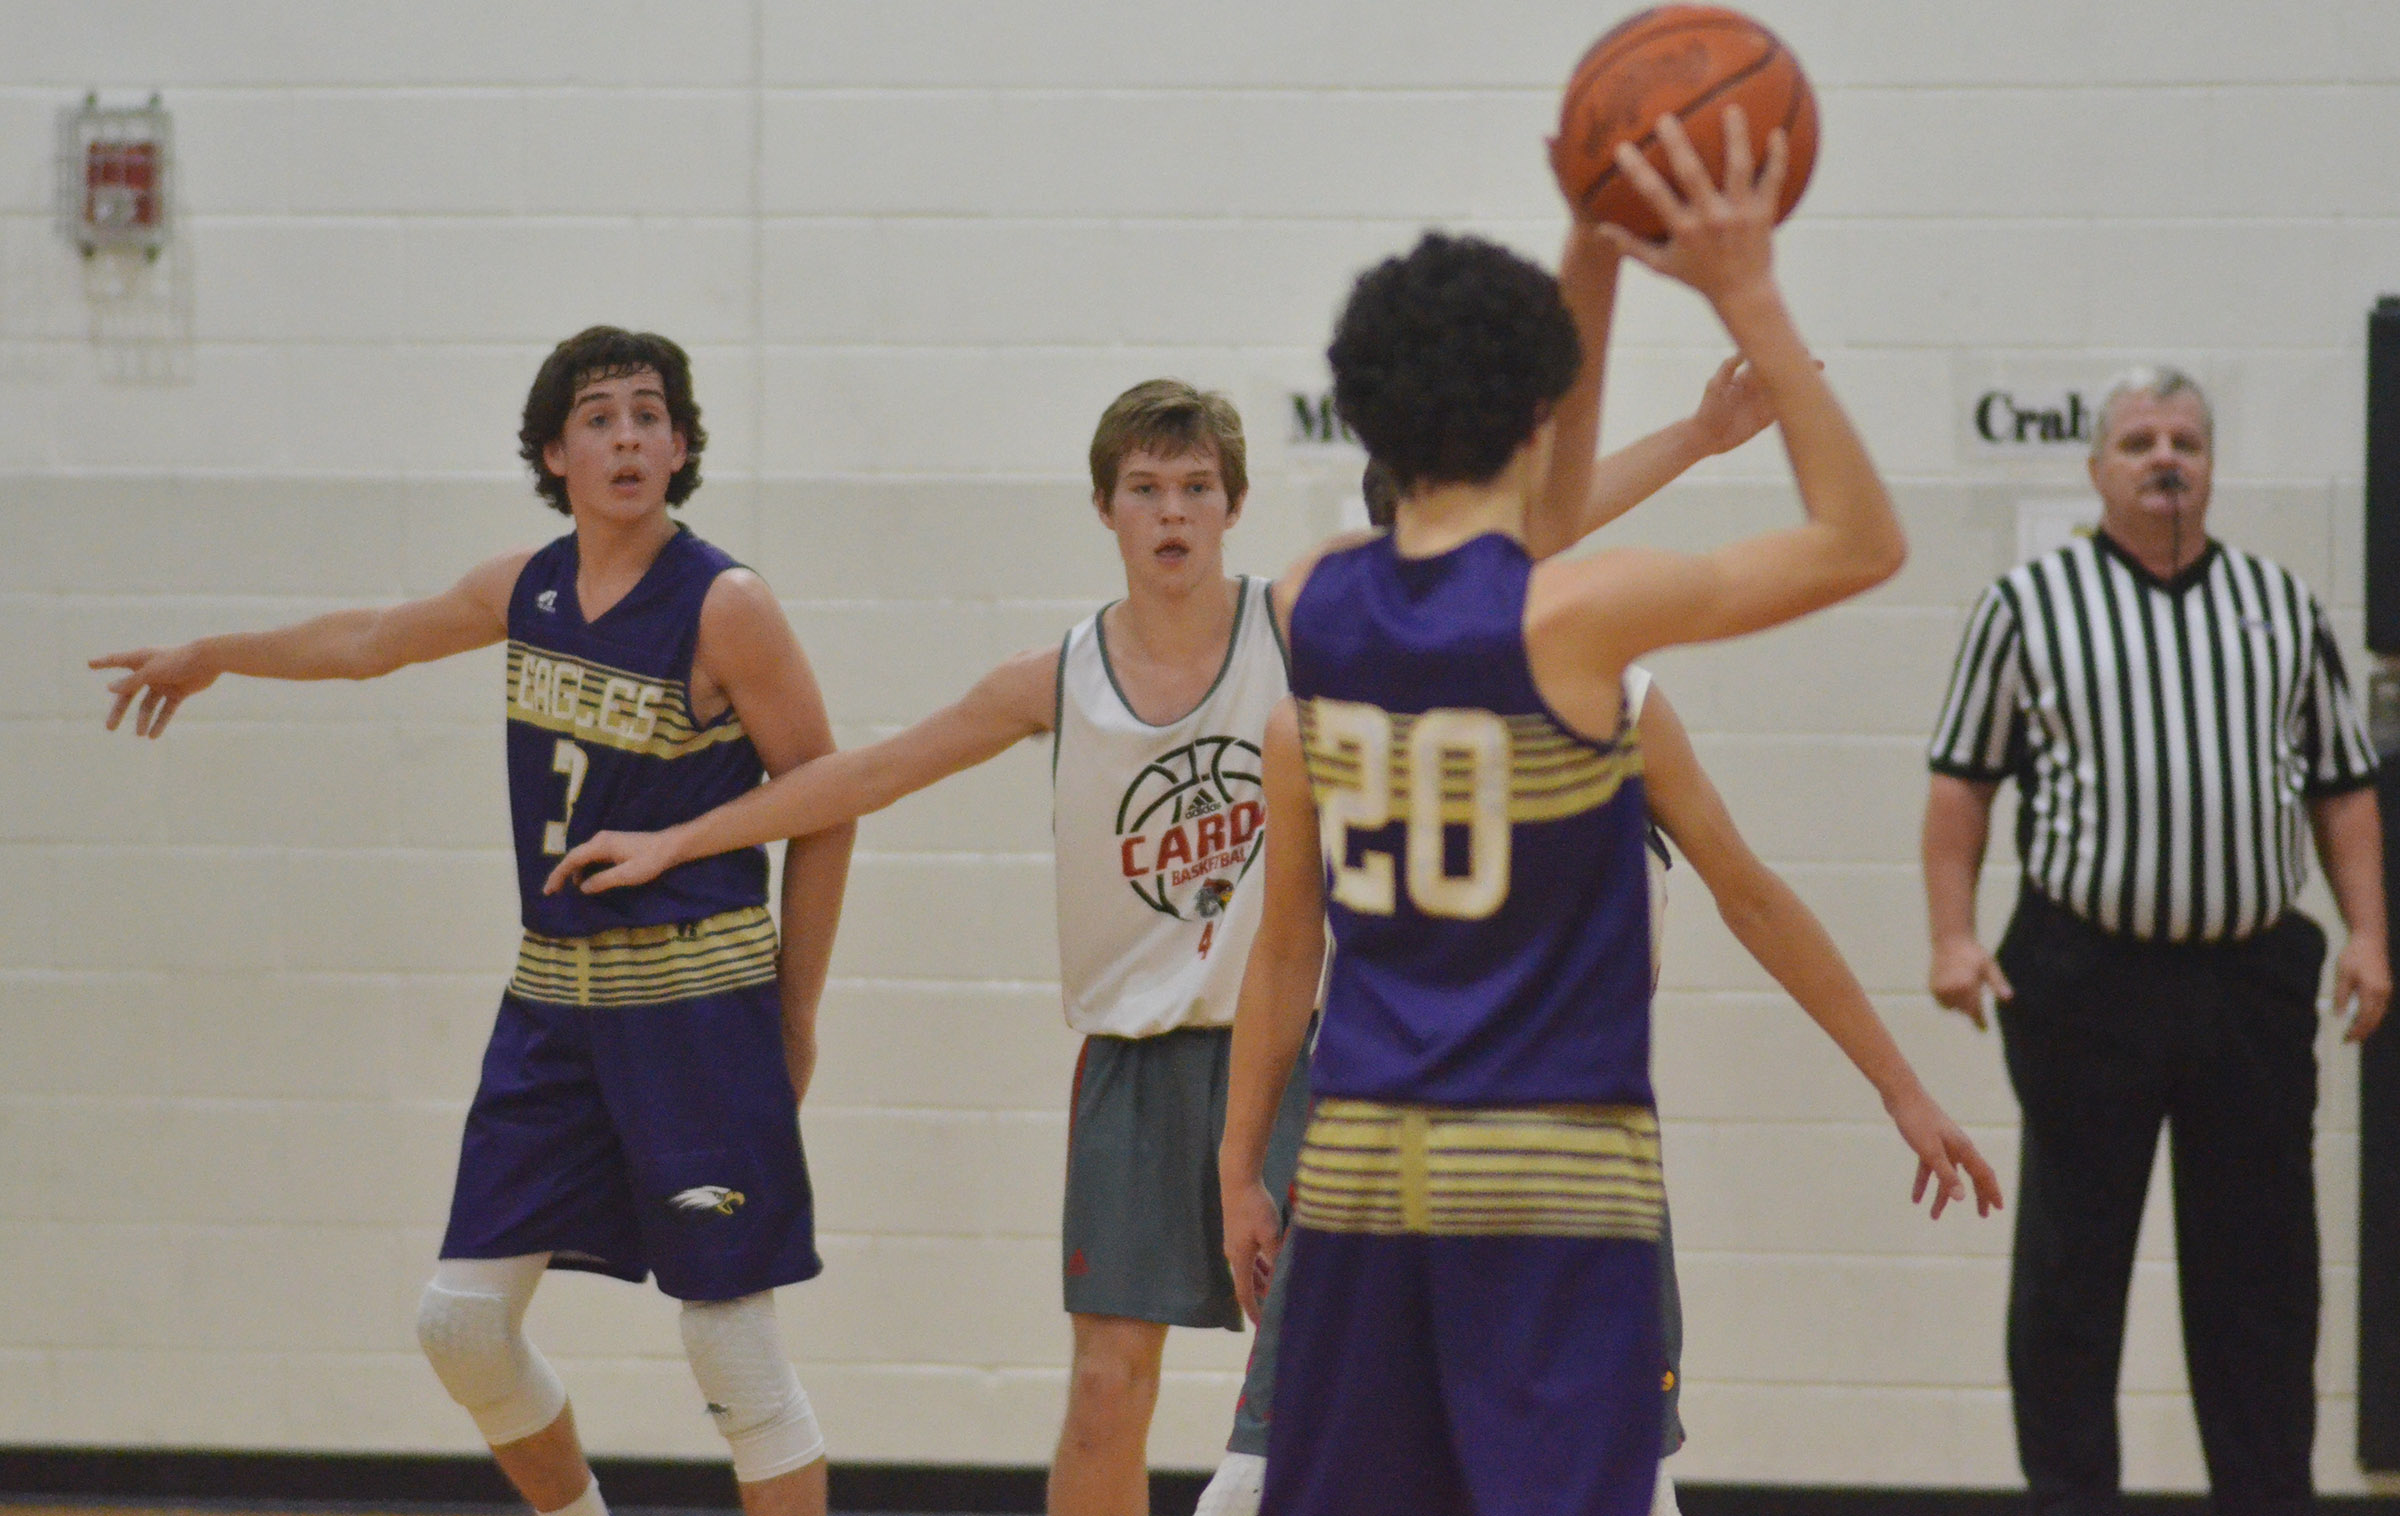 CMS eighth-grader John Orberson calls for a pass to his teammate.